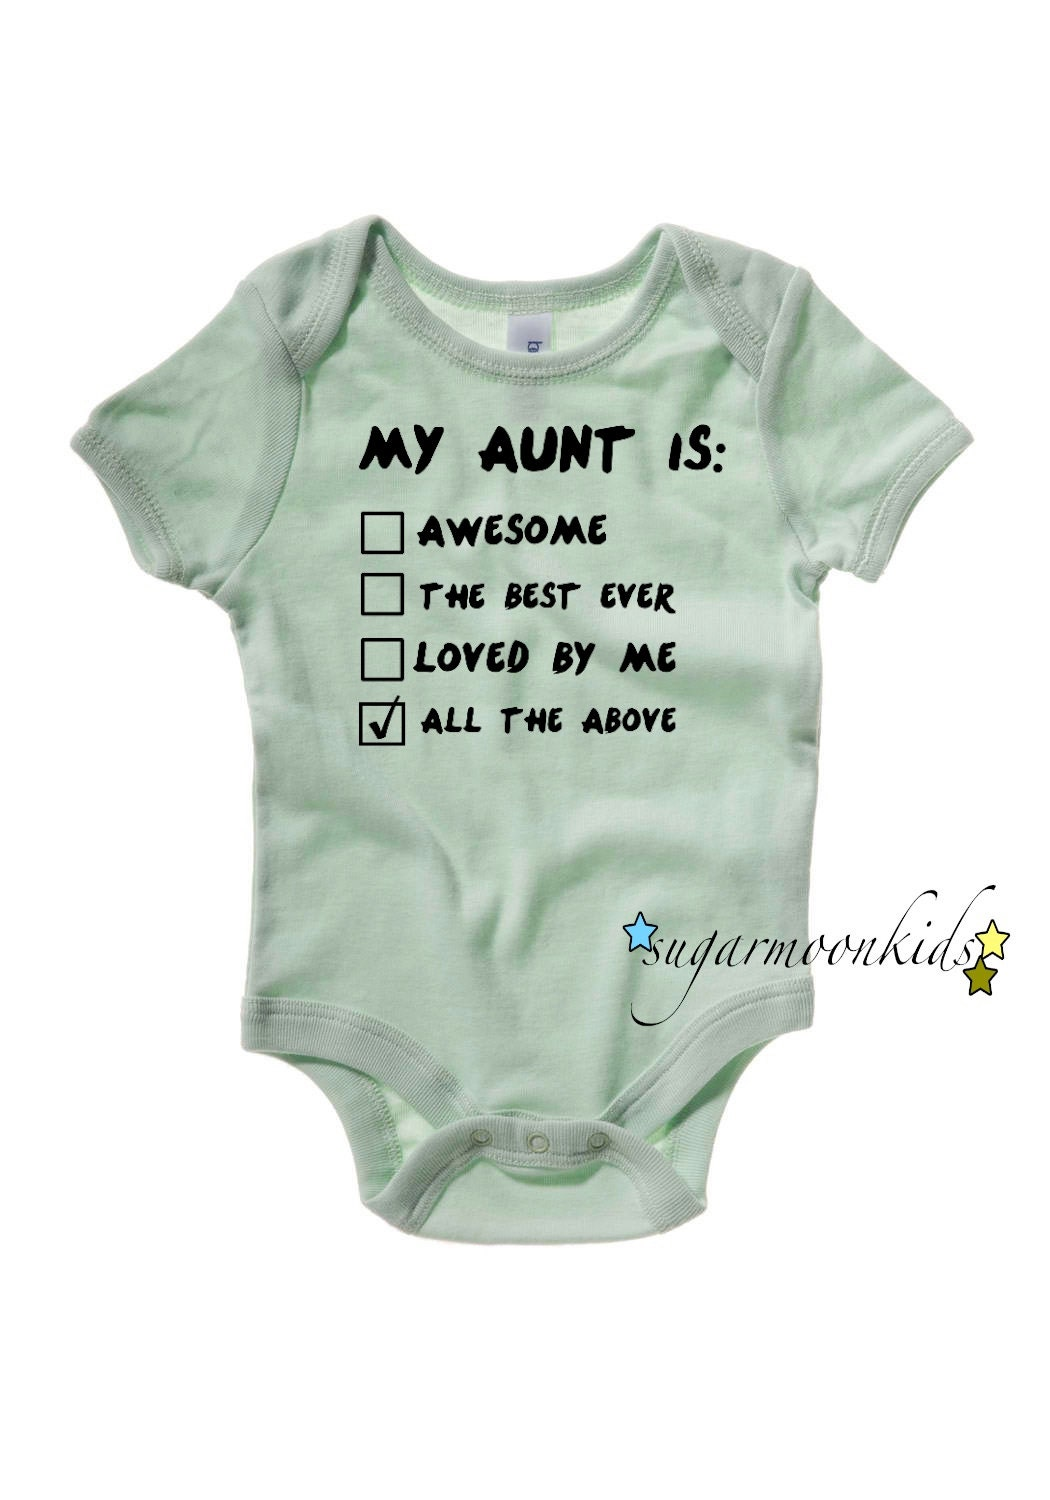 Aunt baby by sugarmoonkids on etsy